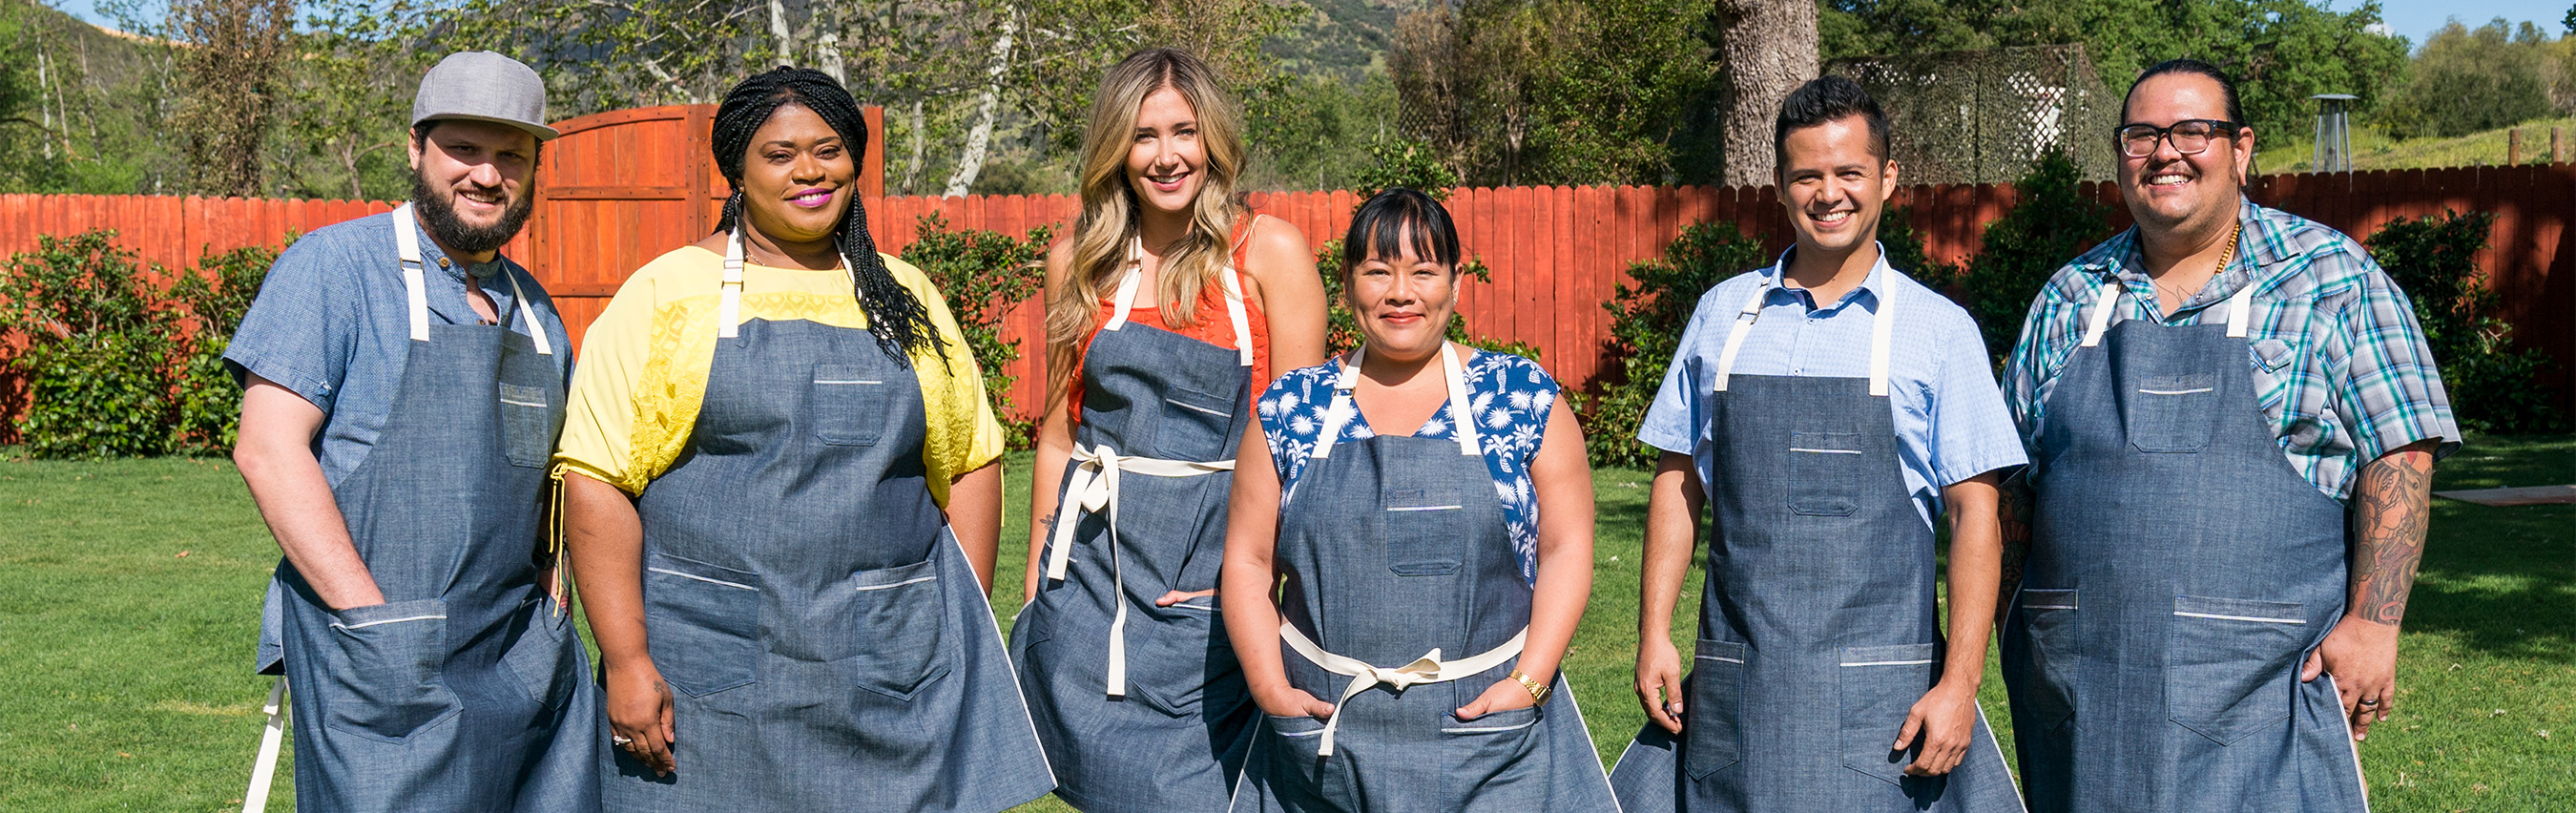 Competitors of Food Network's Ultimate Summer Cook-Off